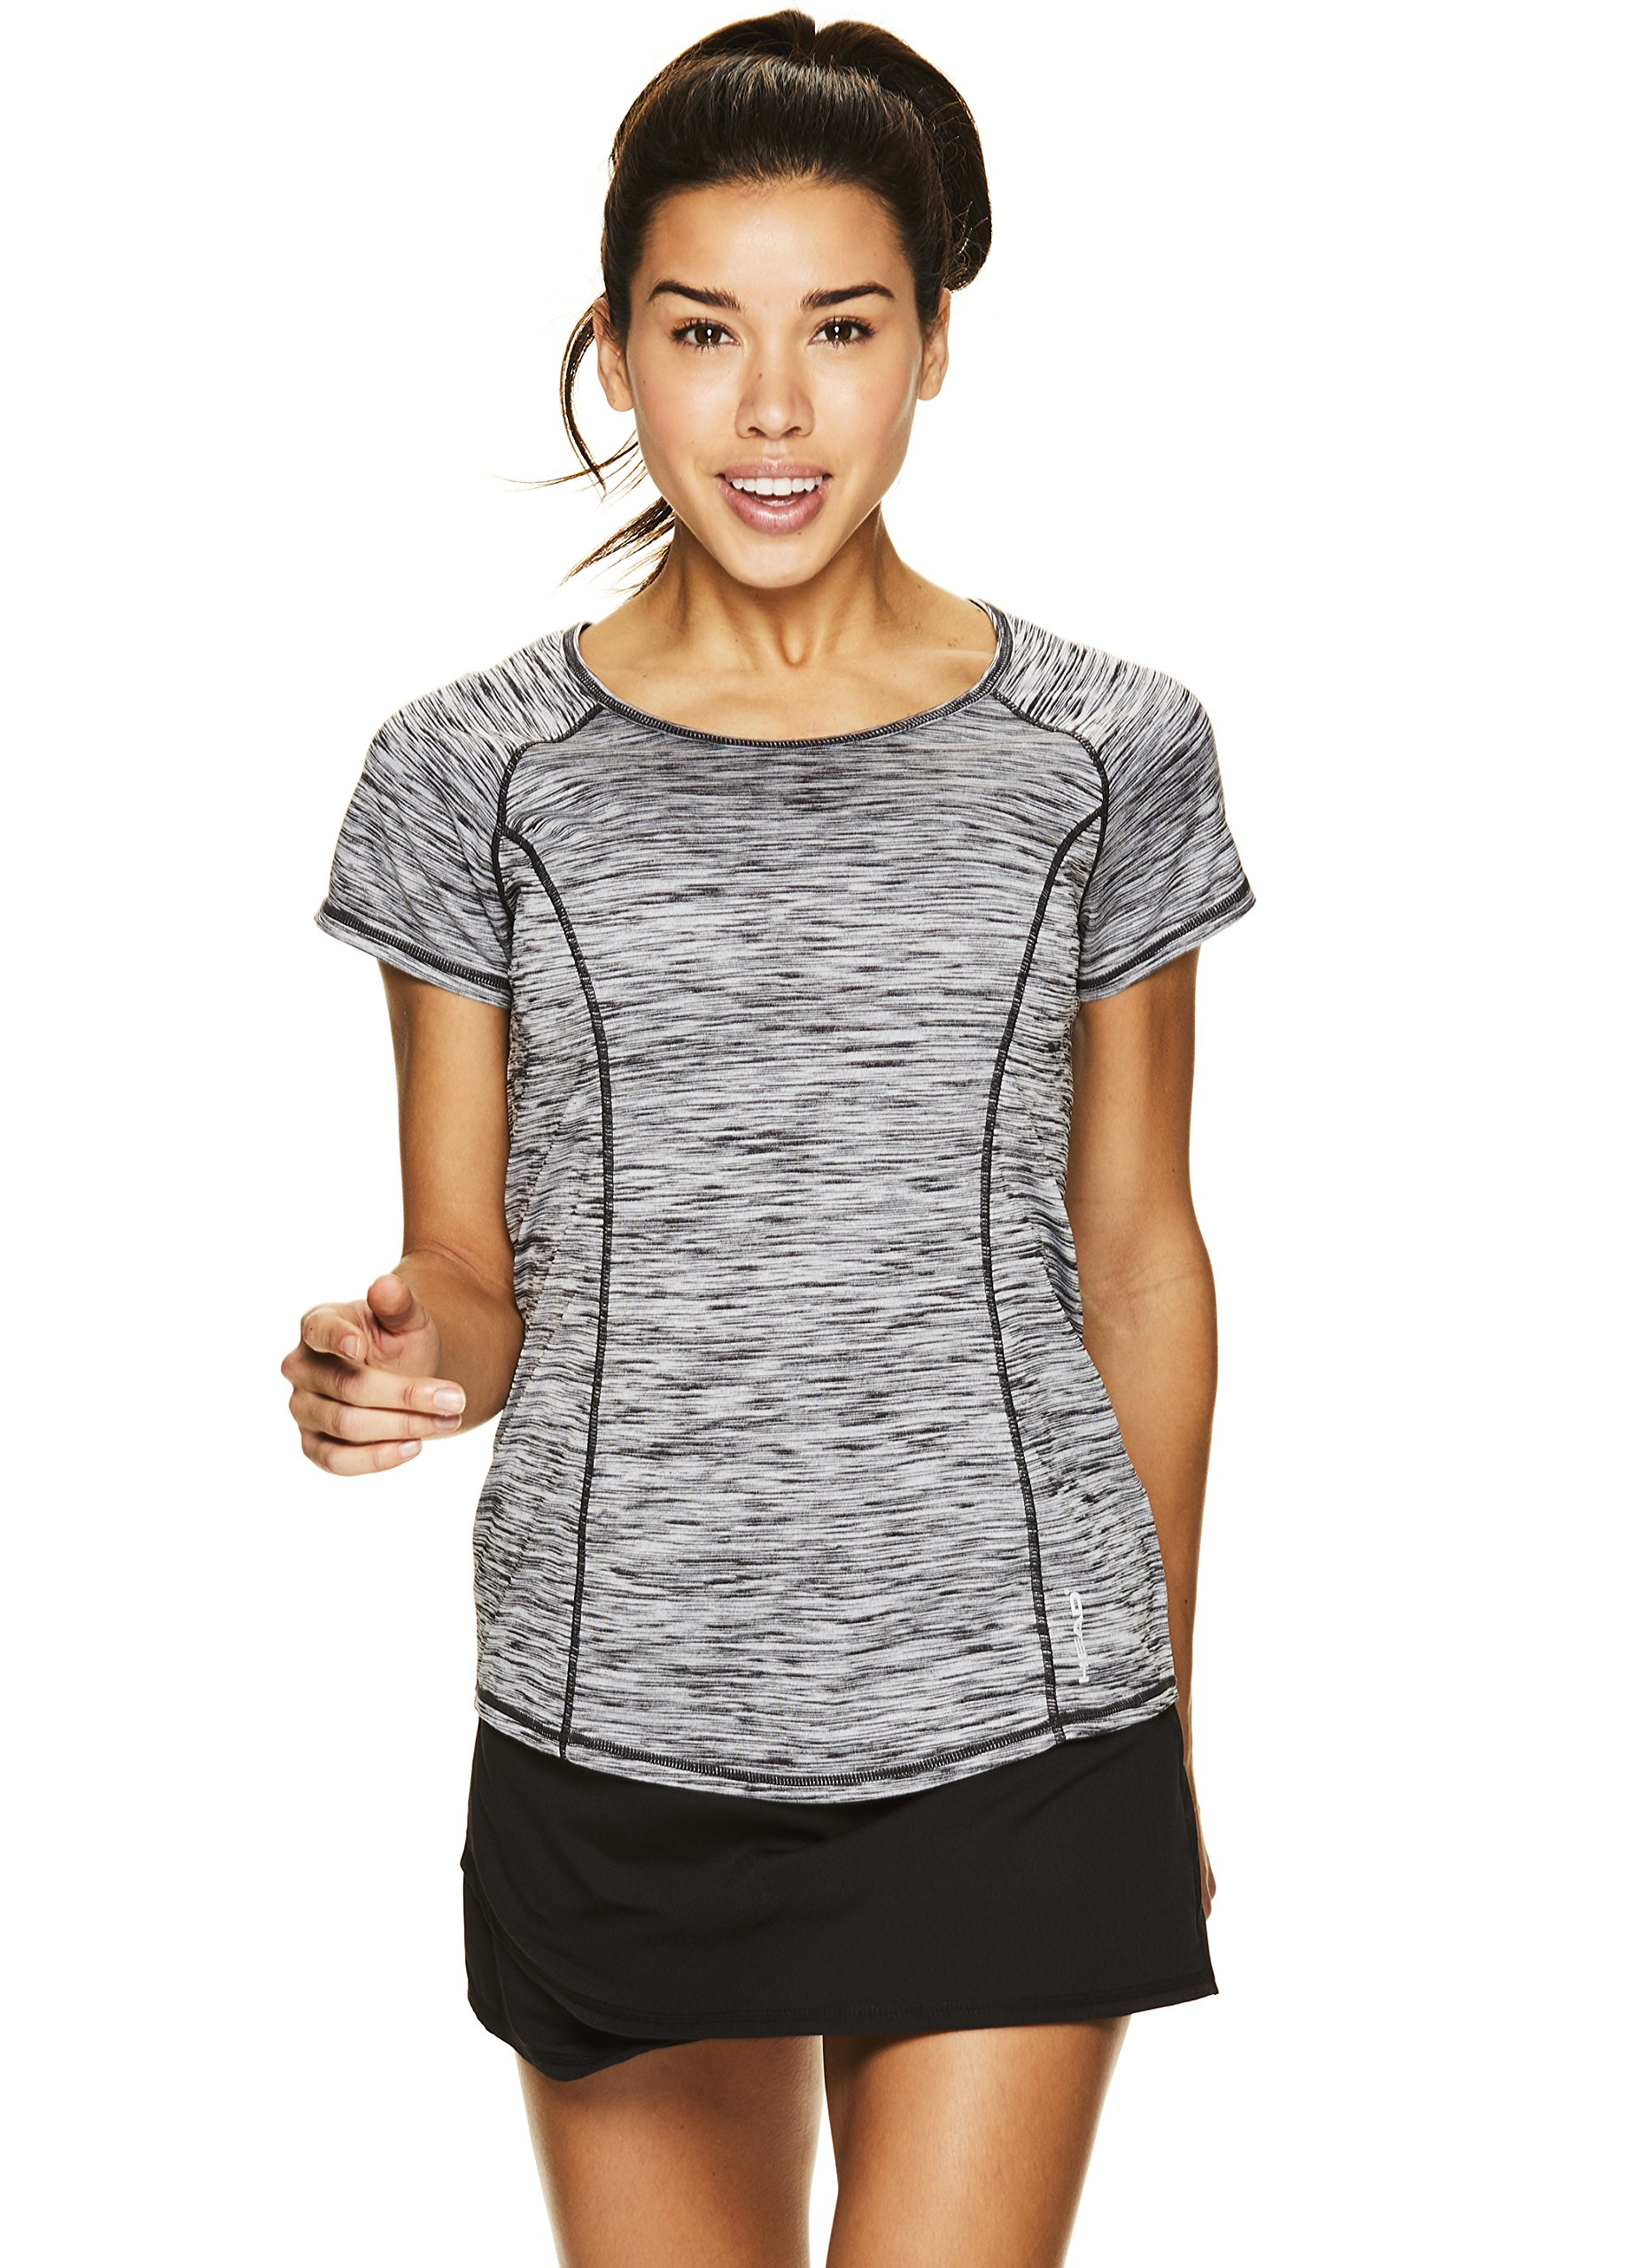 HEAD Women's Serena Short Sleeve Workout T-Shirt - Performance Crew Neck Activewear Top - Black Heather, X-Small by HEAD (Image #4)